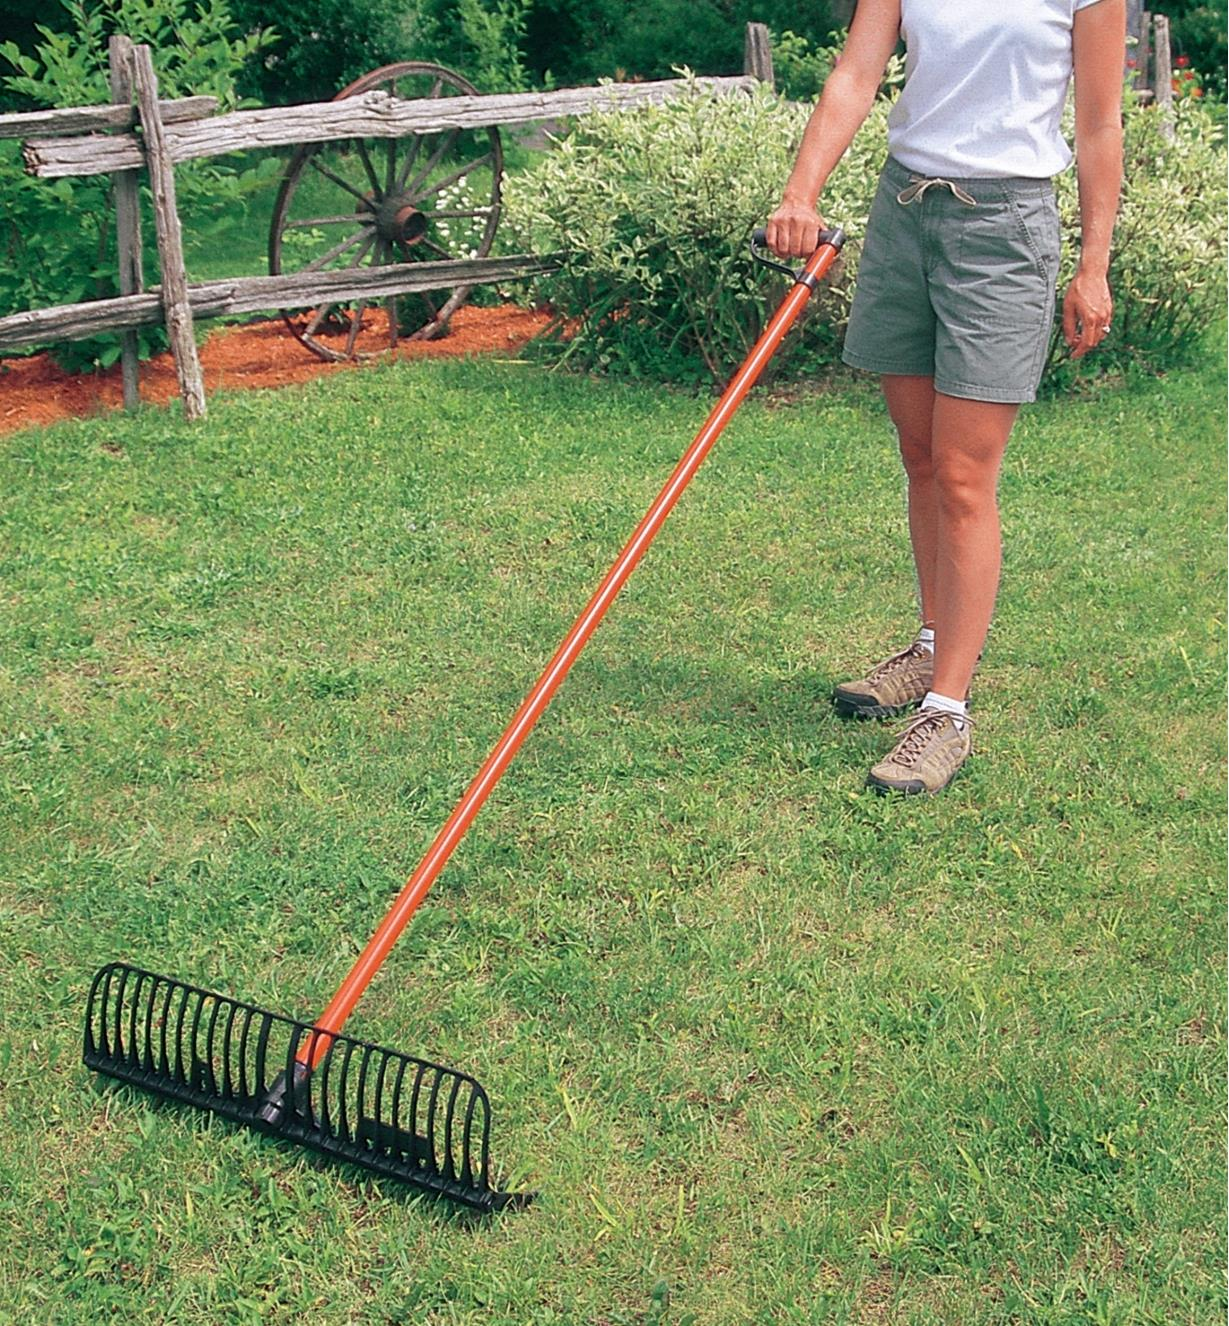 A woman uses a Power Rake with the handle turned sideways